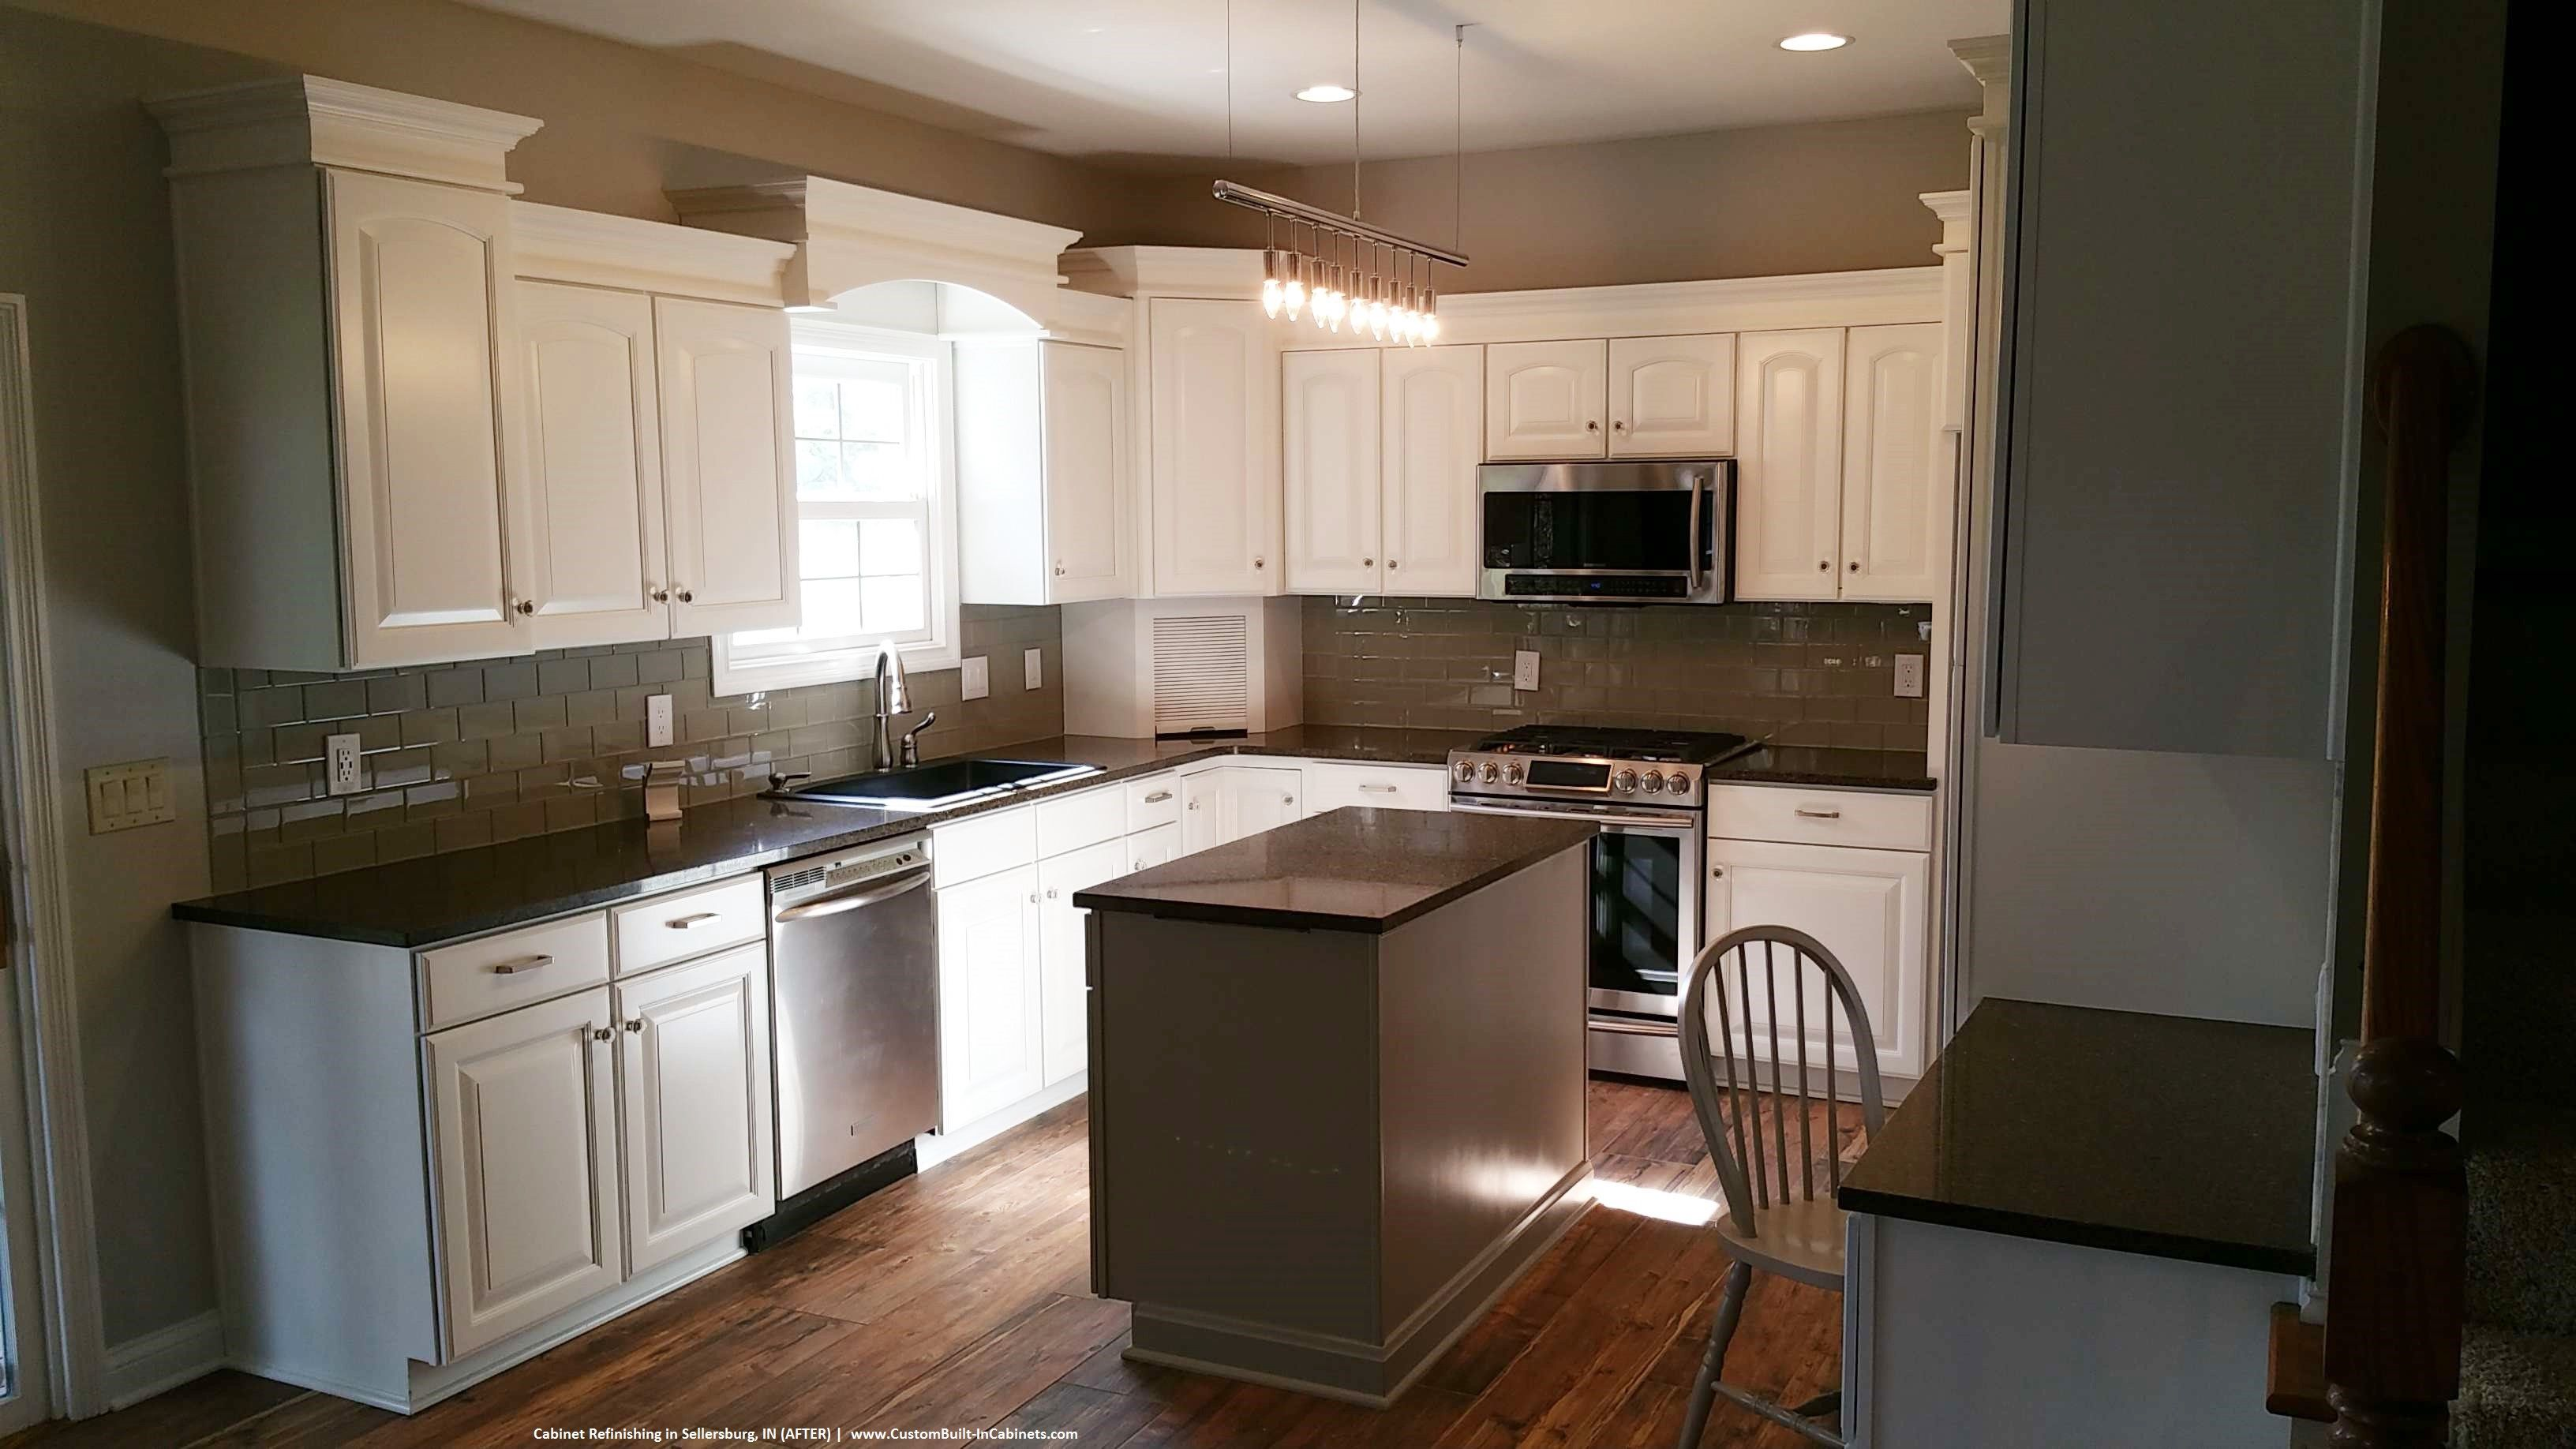 Cabinet Refinishing Louisville And Southern Indiana Areas Https Ift Tt 2tojnsv Kitchen Cabinets Kitchen Refinishing Refinish Kitchen Cabinets